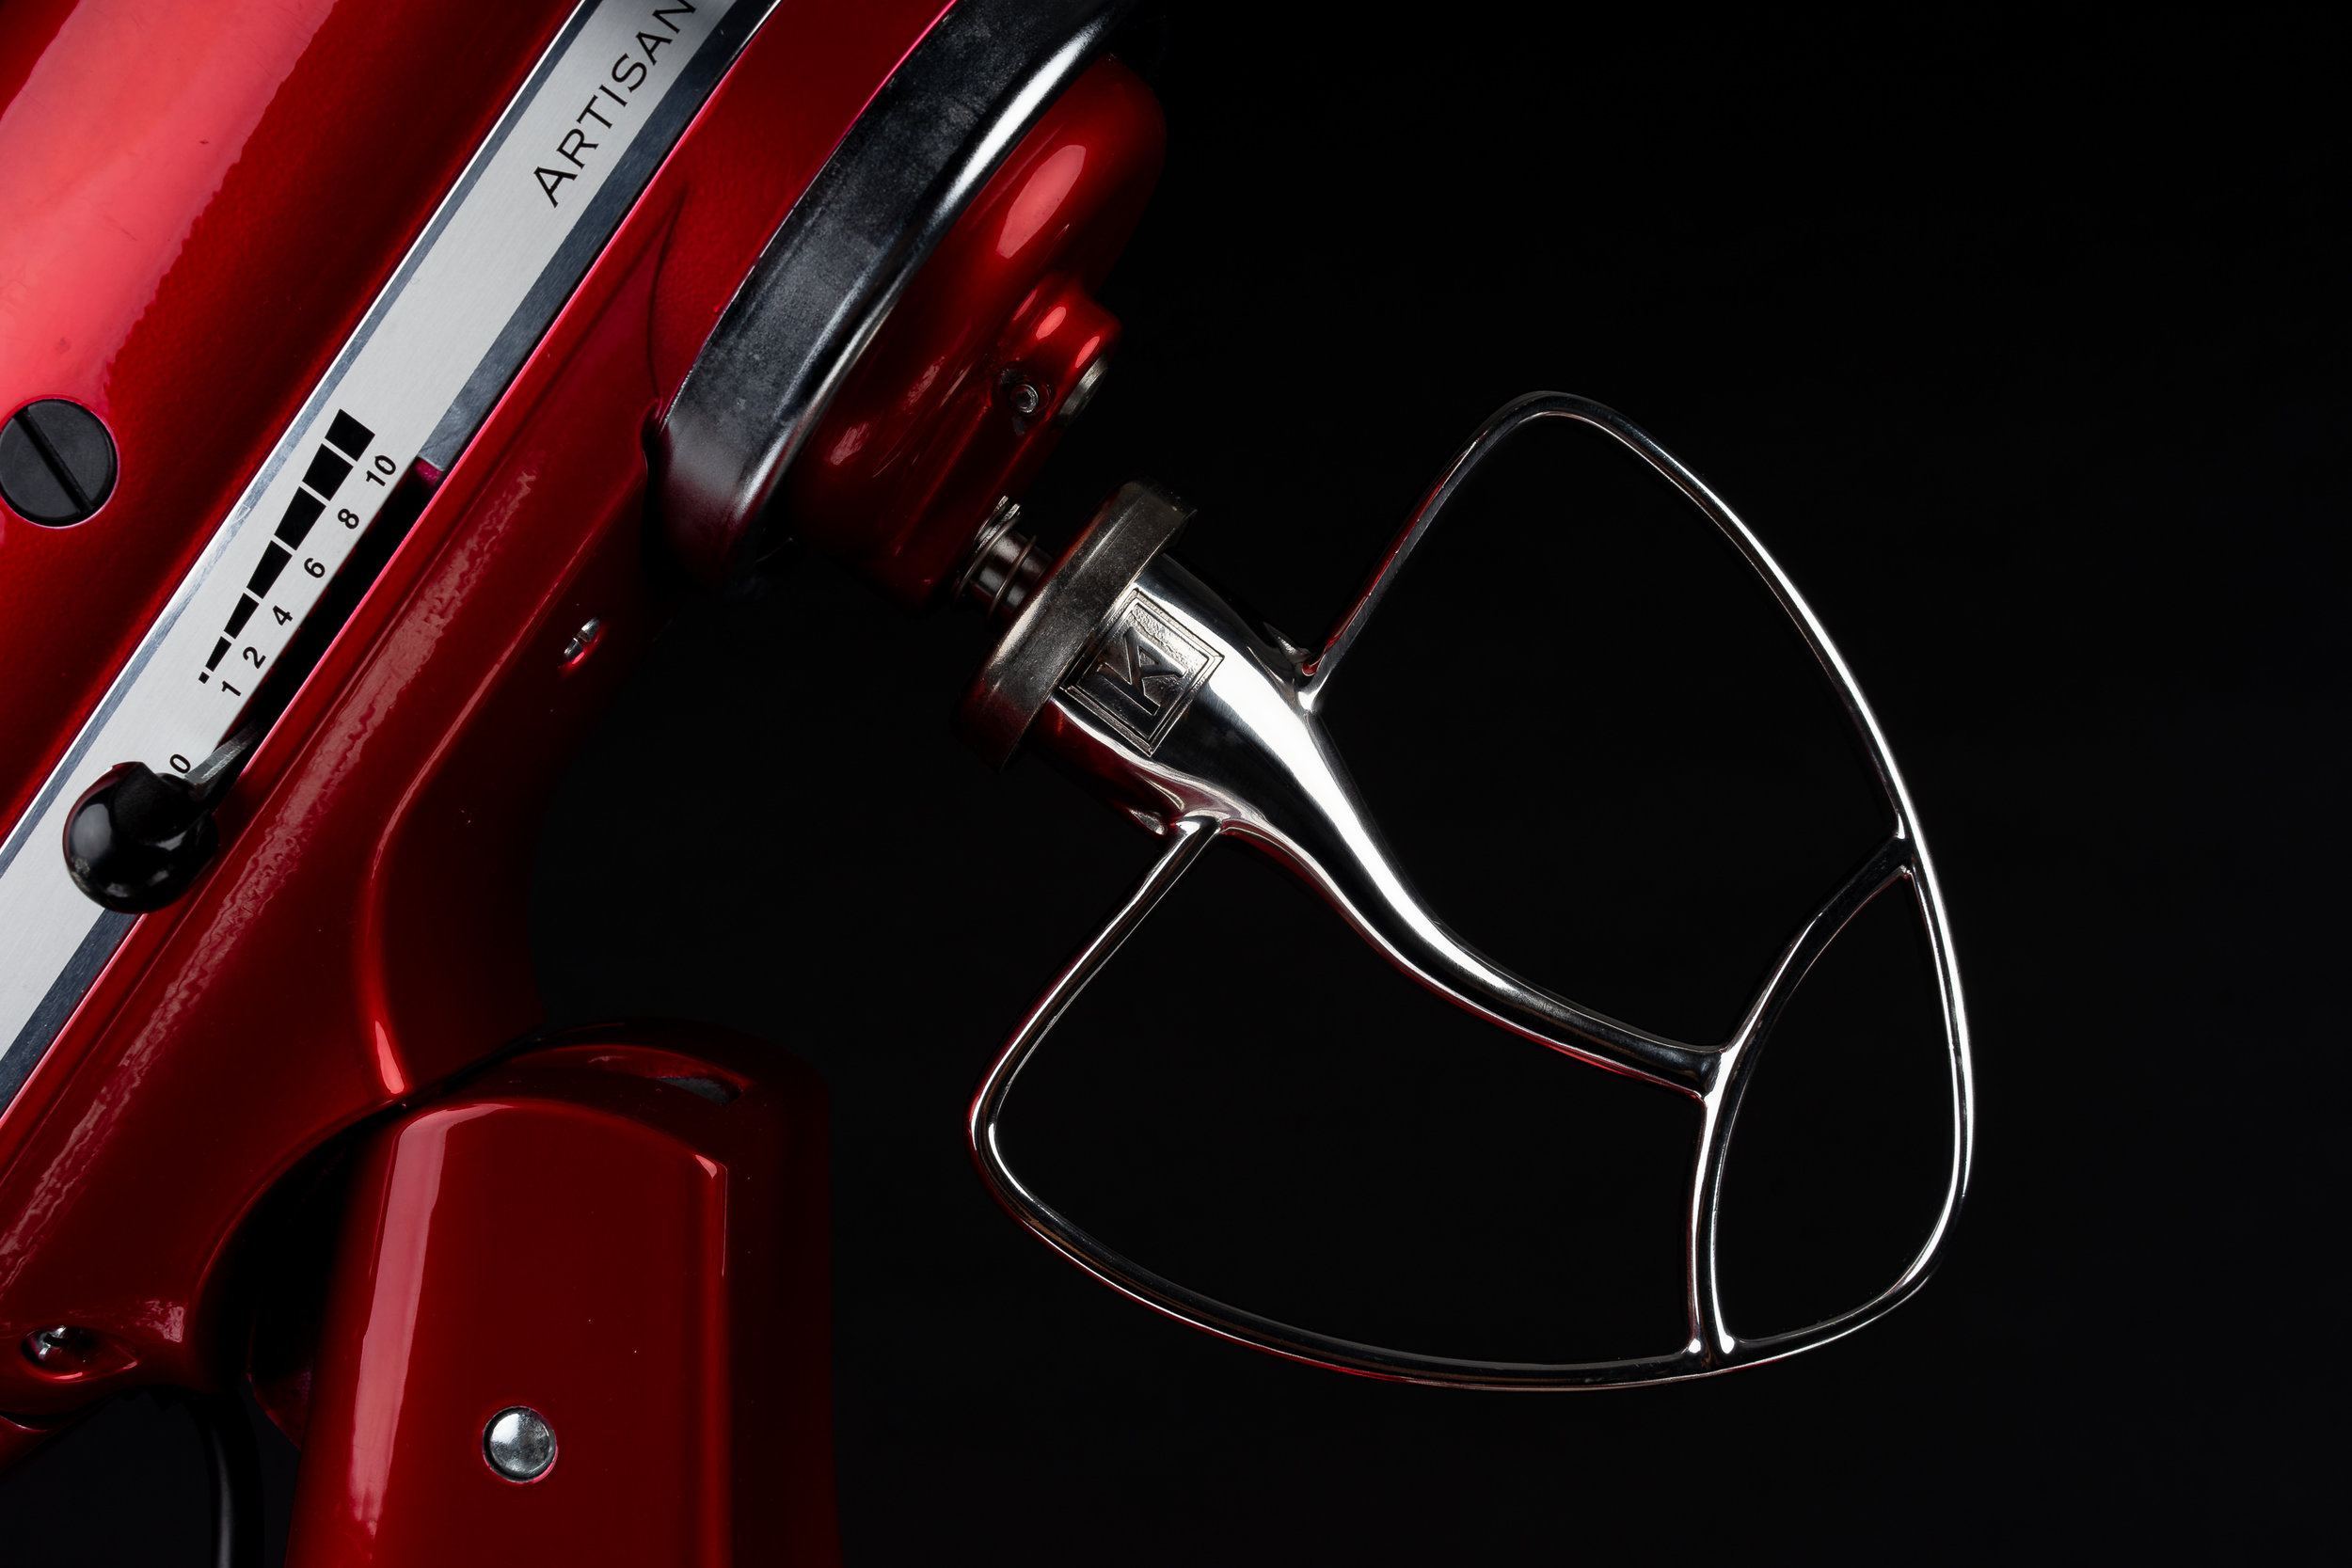 Made to the highest standards - The Tilt-Head Beater has been designed as a quality product to enhance your baking with your mixer.